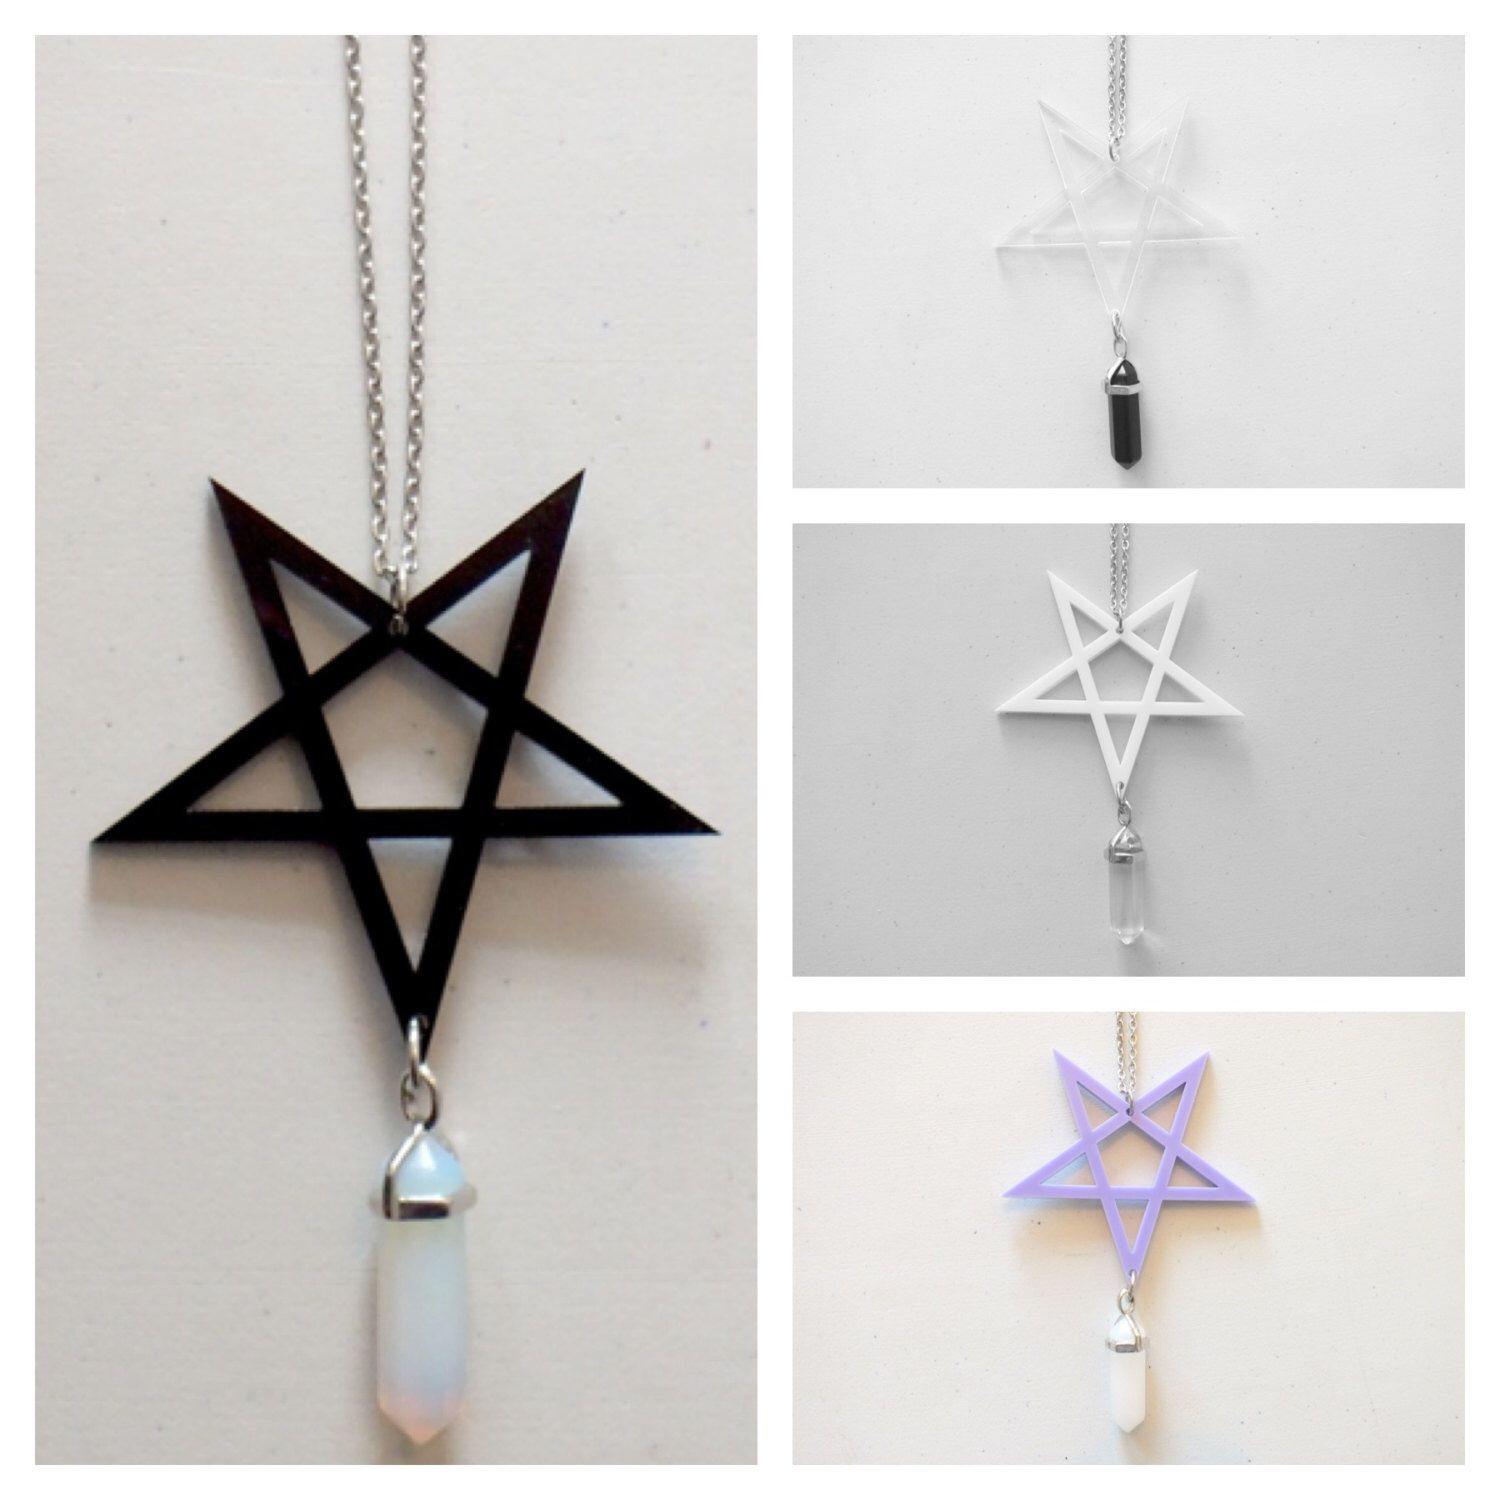 Pentagram star gem symbol pendant necklace by janenevermore on etsy